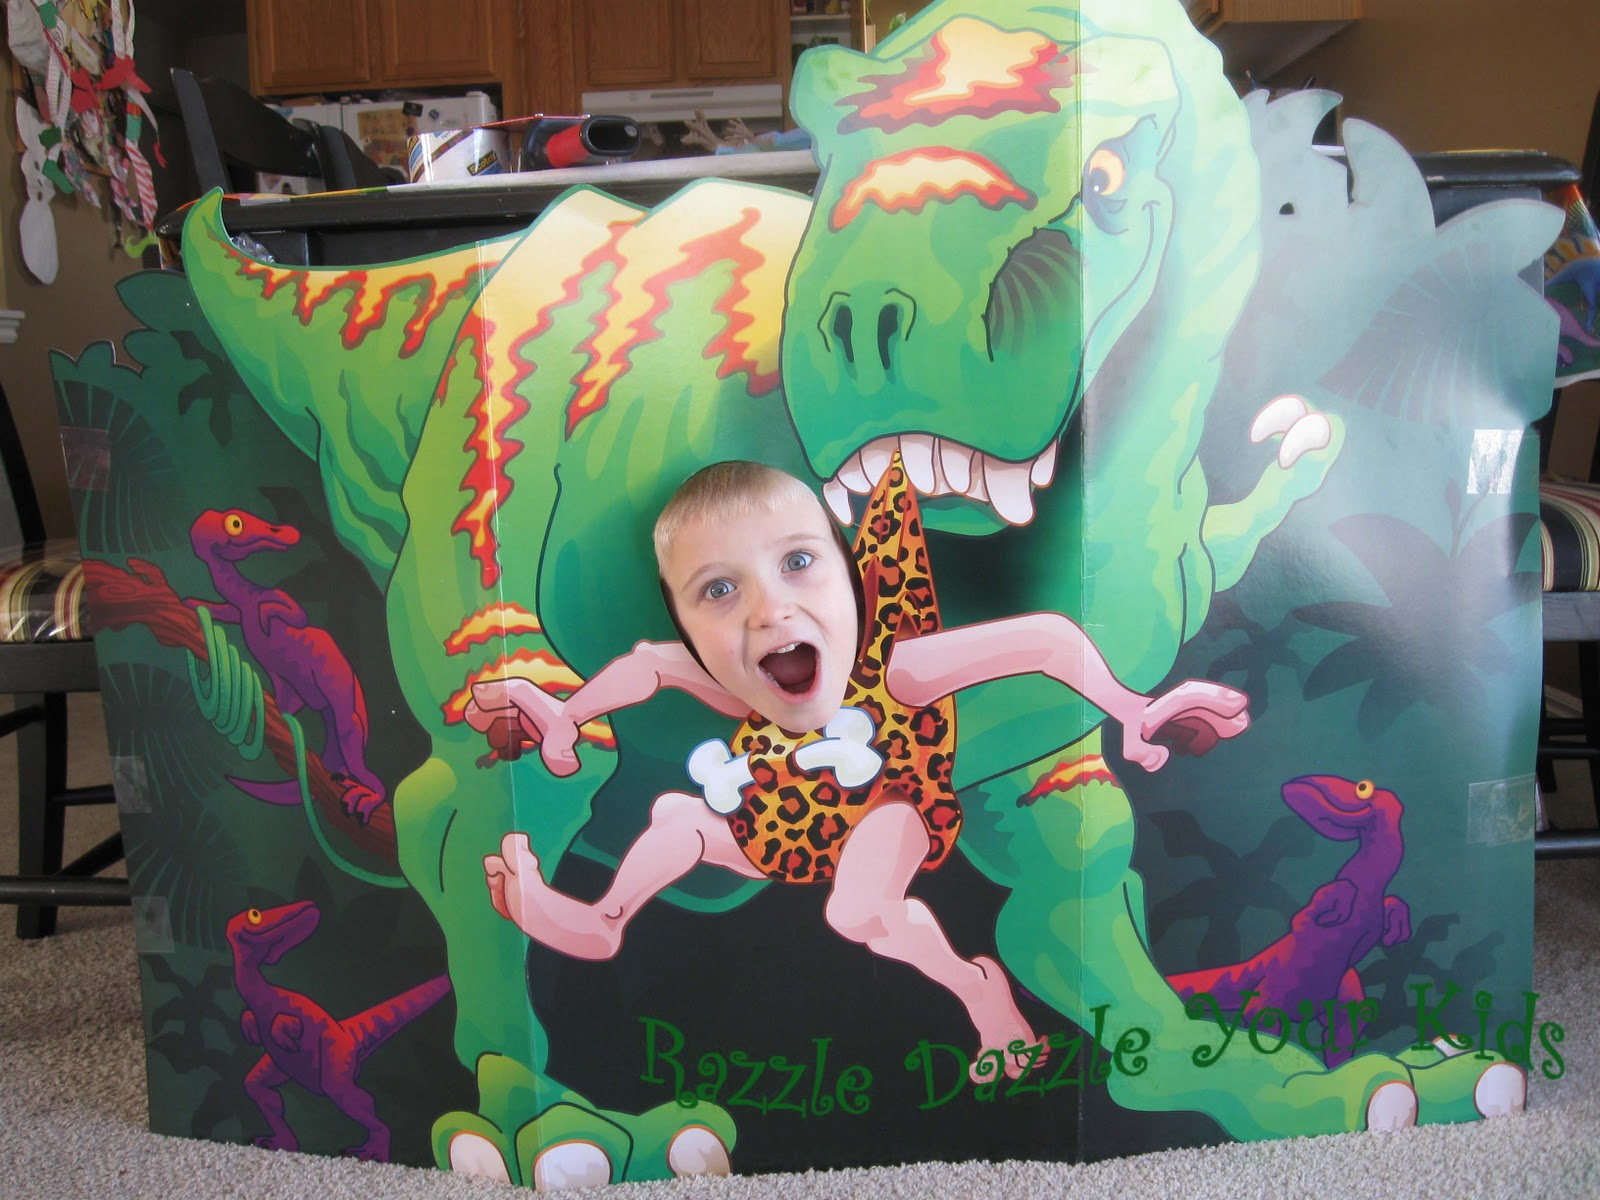 Razzle Dazzle Your Kids Dinosaur Birthday Party 6 years old